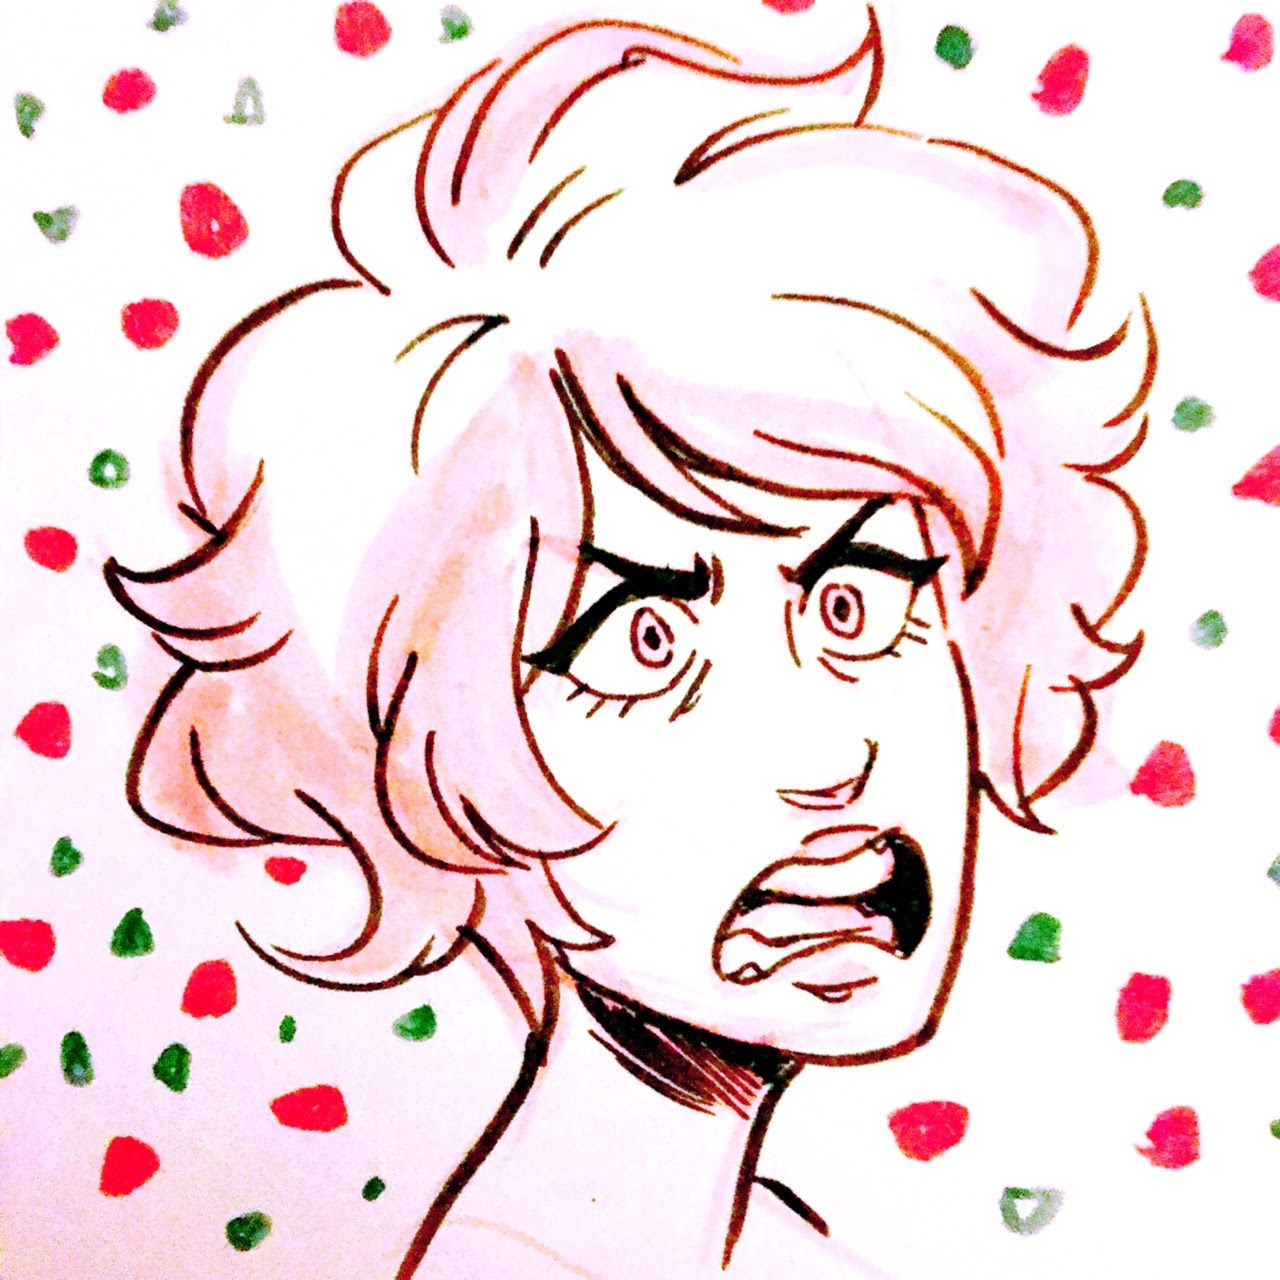 Pink diamond sketches because she's great